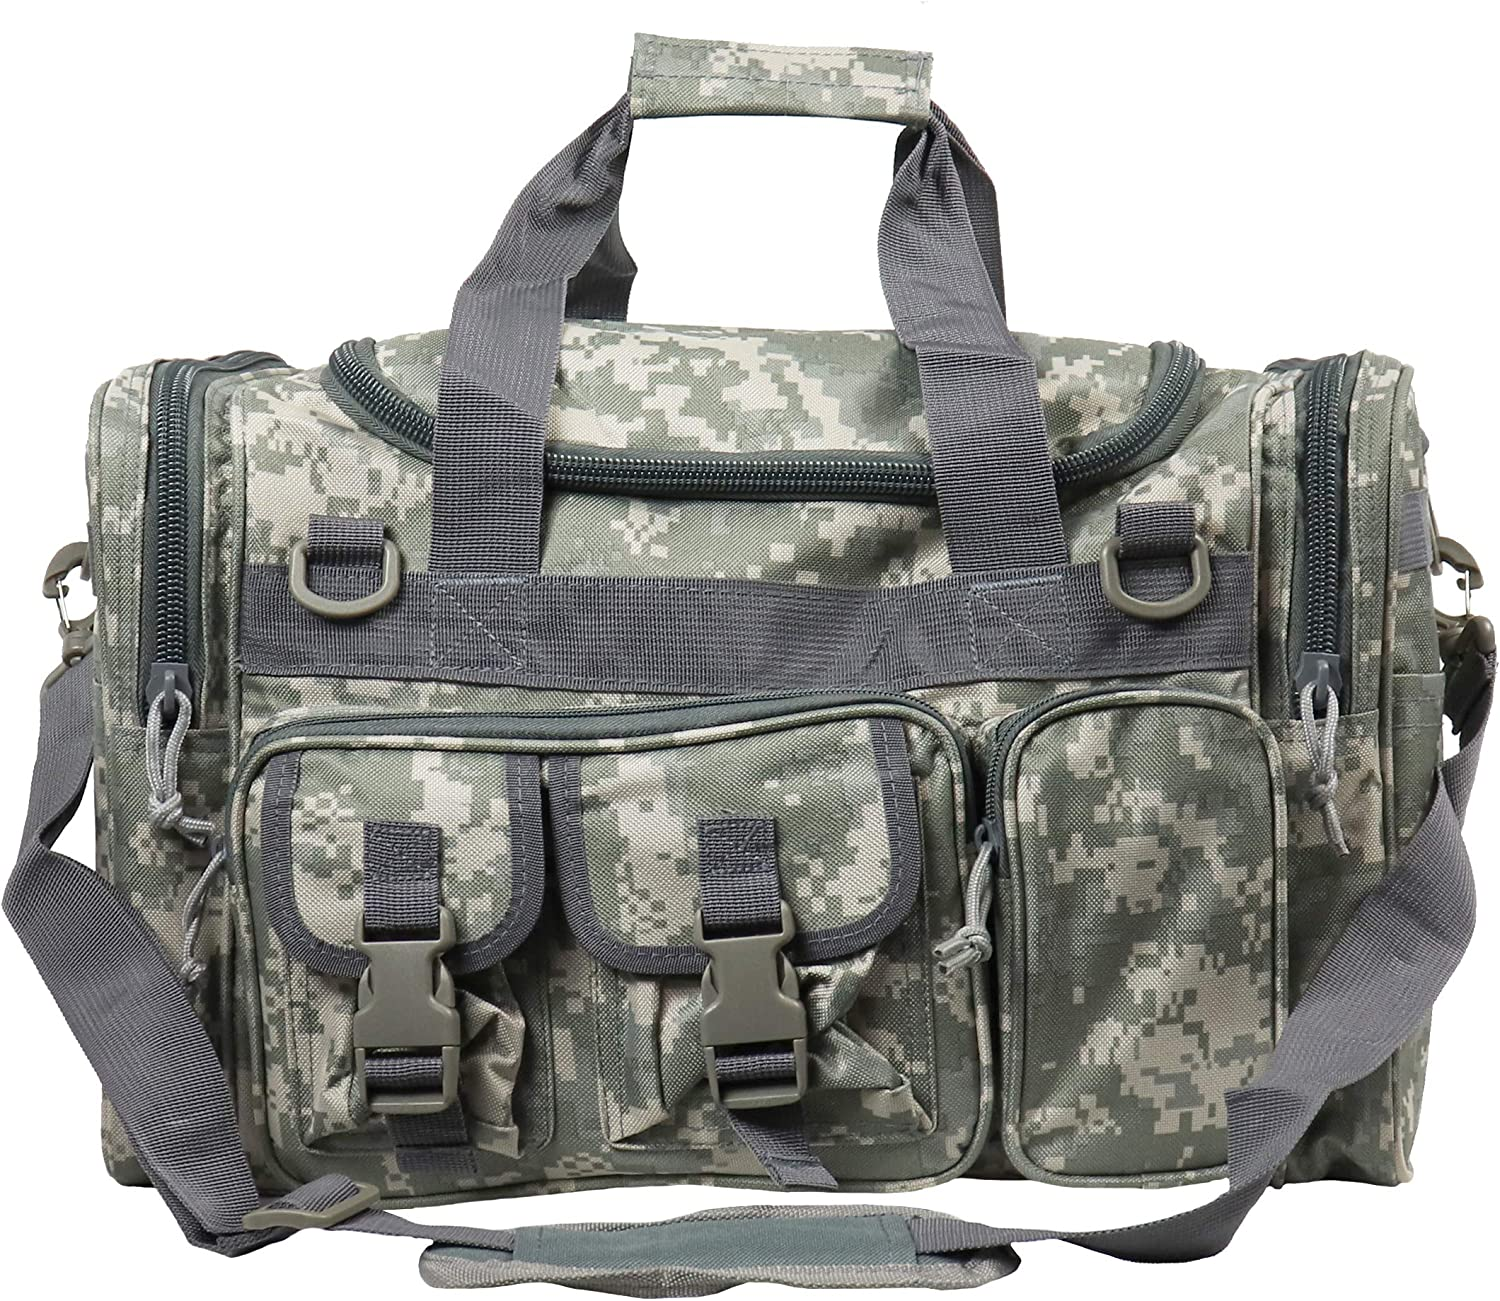 OSAGE RIVER Tackle Bag, Fishing Tackle Storage with Handle and Shoulder Carry Options